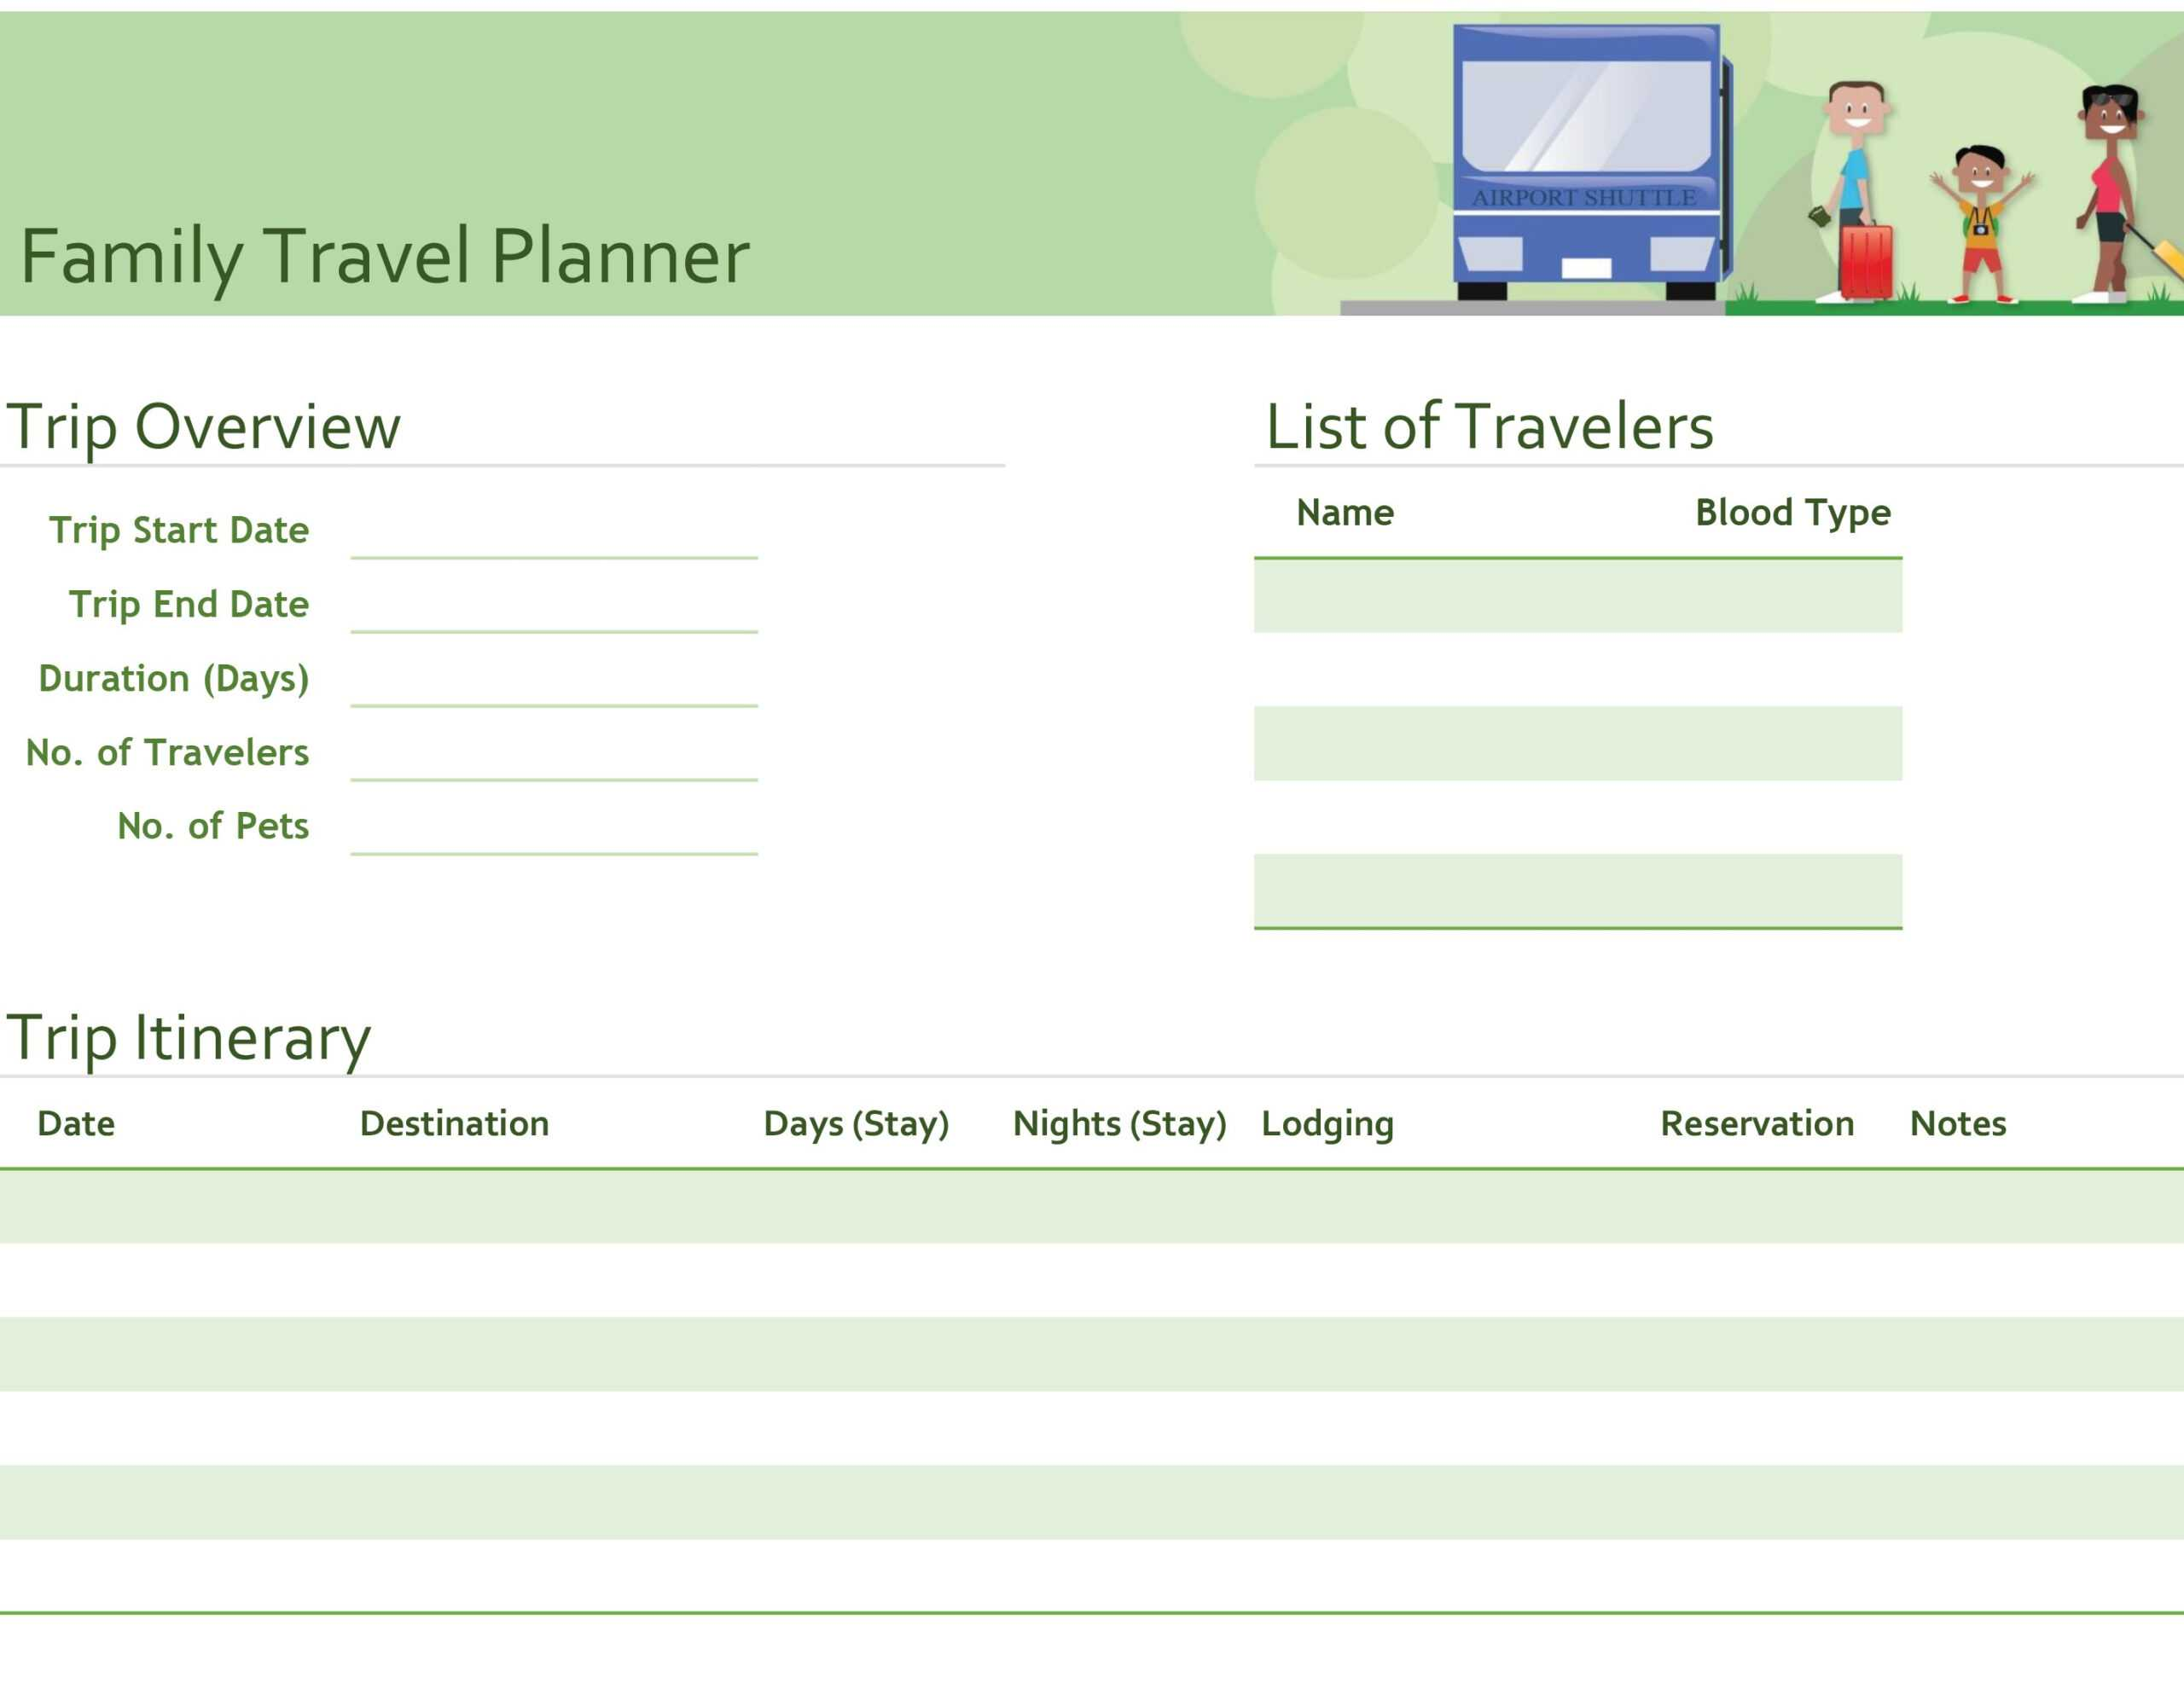 Family Travel Planner in Blank Trip Itinerary Template